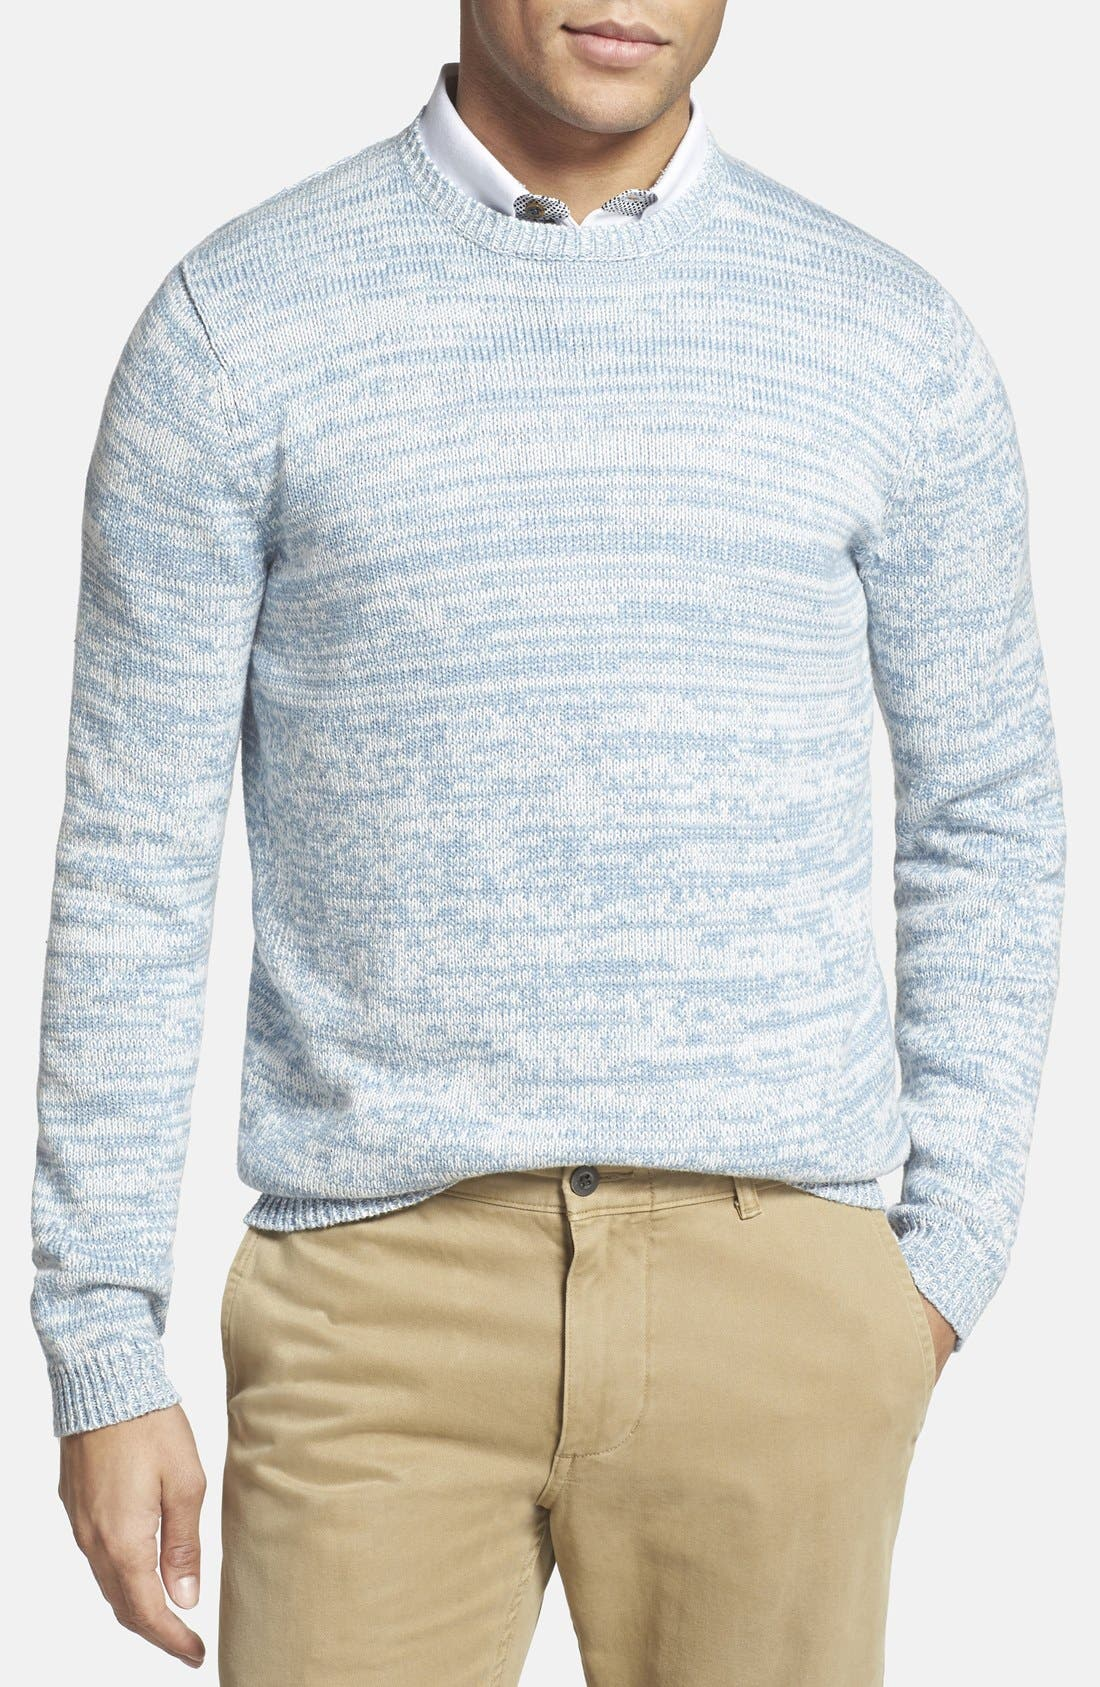 GRAYERS, 'Beach Marl' Crewneck Sweater, Main thumbnail 1, color, 465